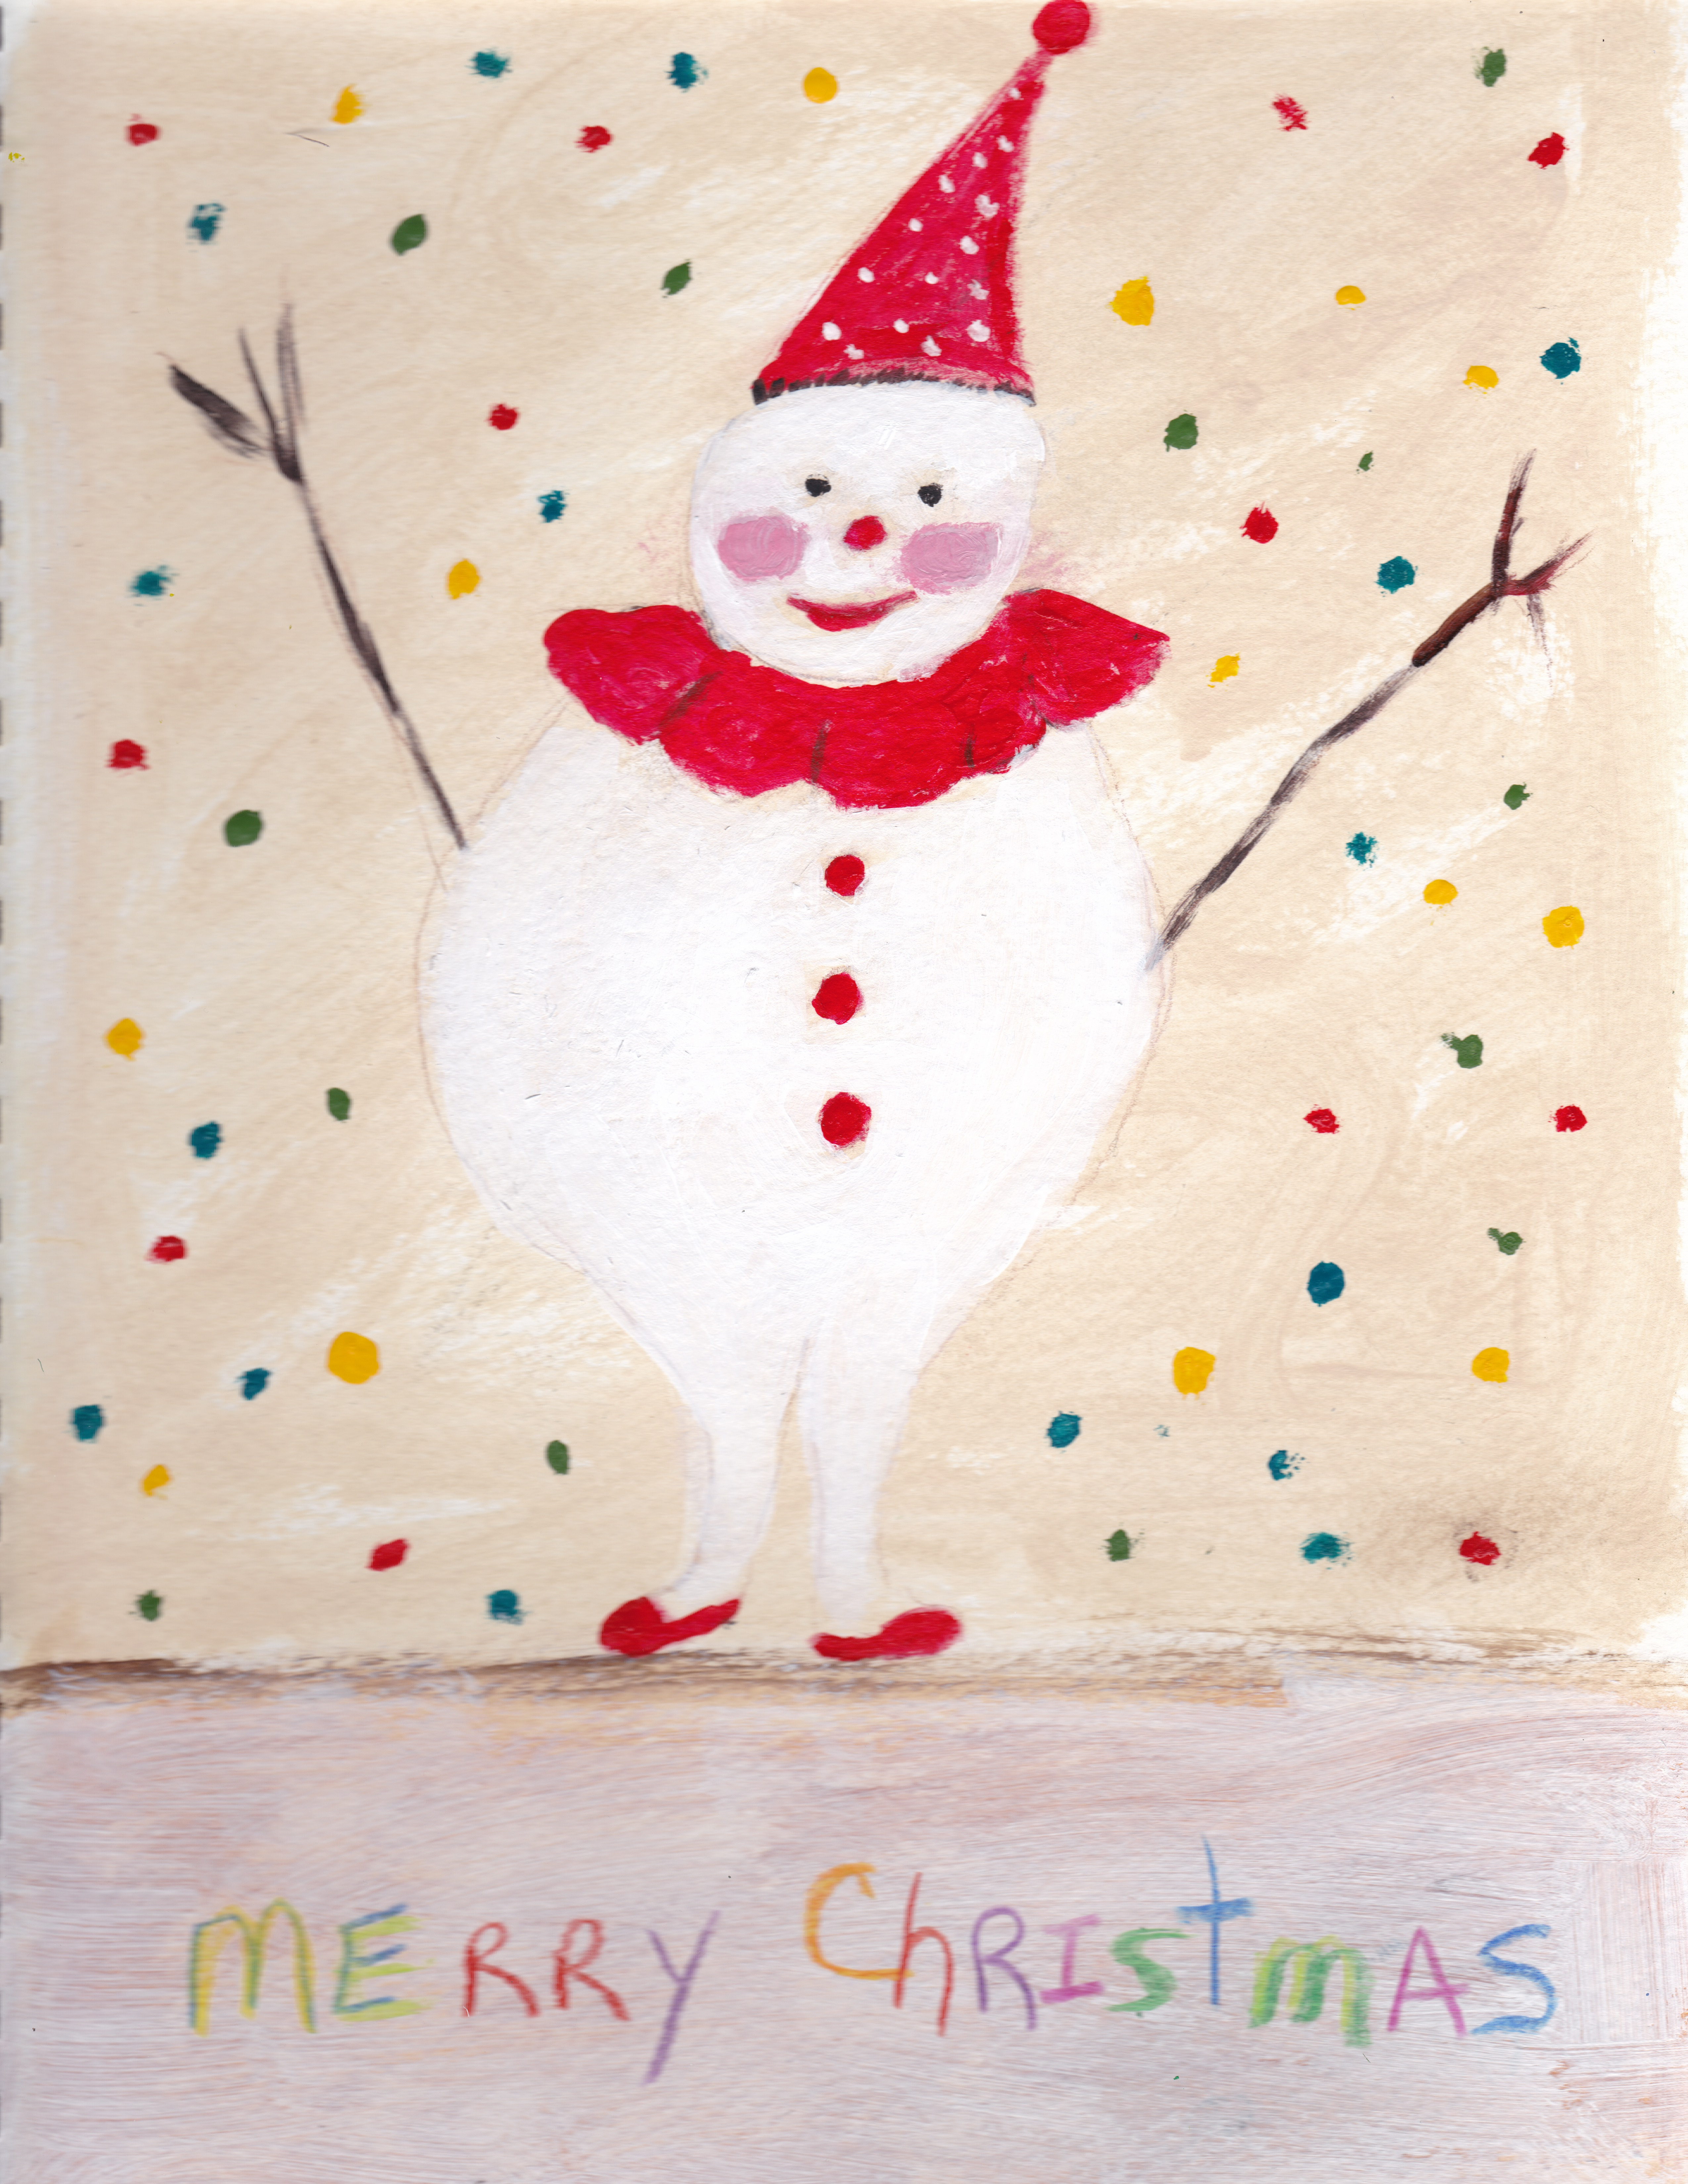 Merry Christmas from the sketchbook (2014) acrylics